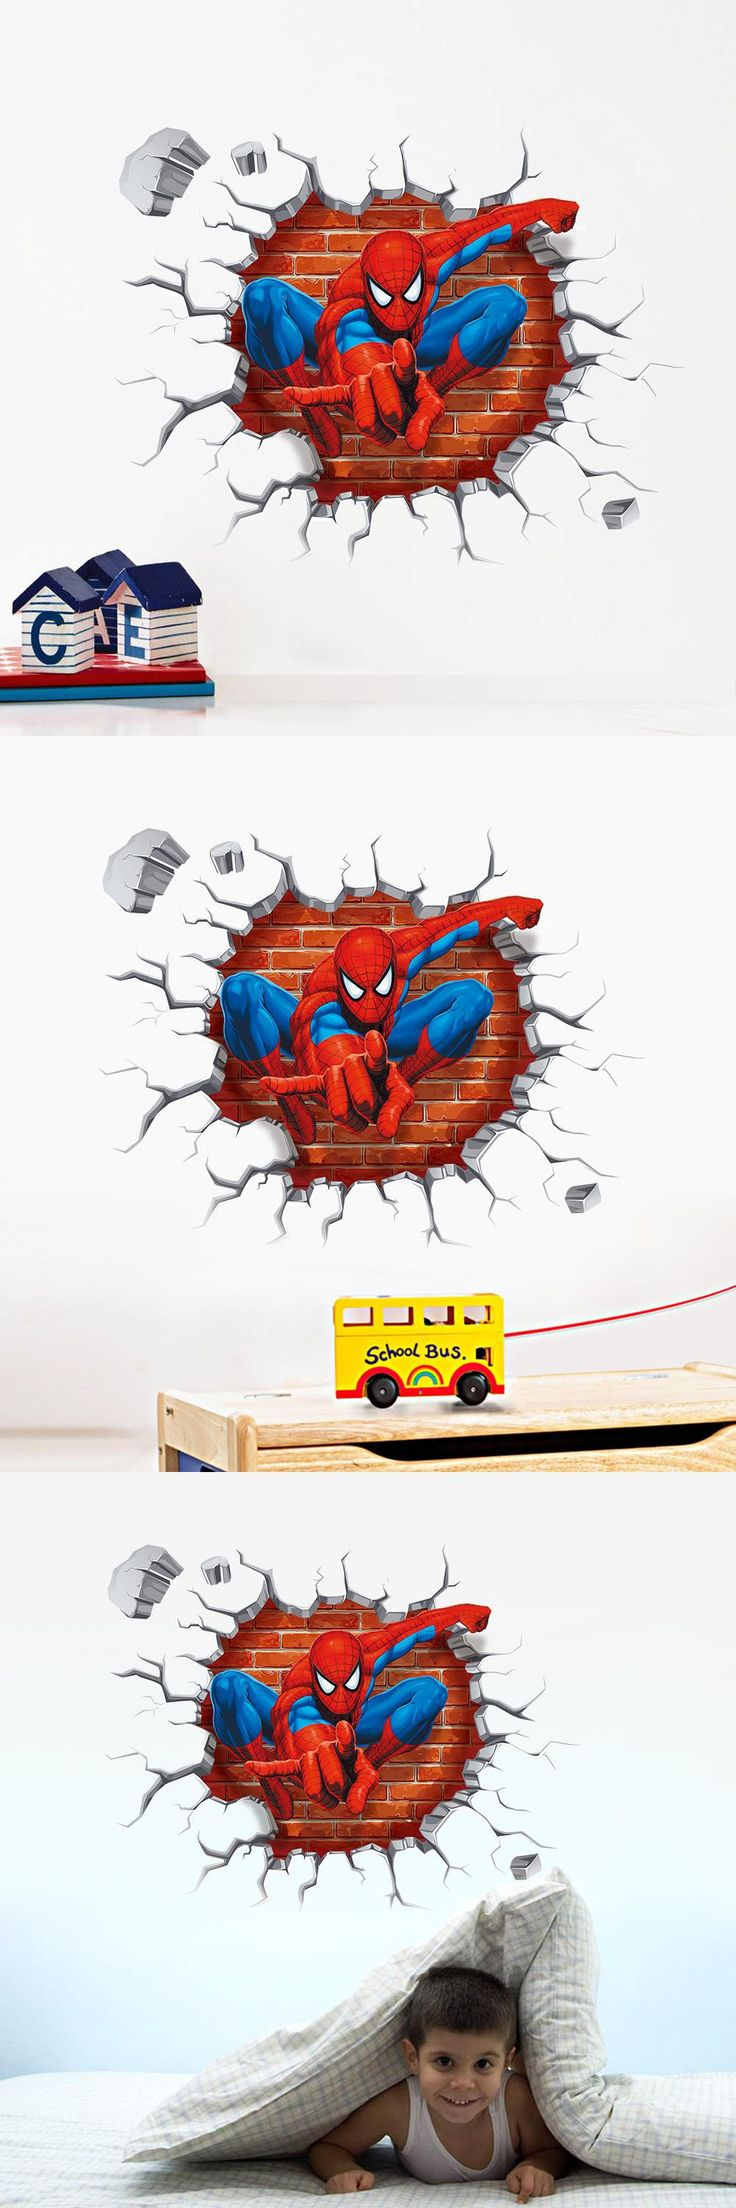 3d Cartoon Spiderman wall stickers for kids rooms home decor Kids Nursery Wall Decals Home decoration Boy room gift Wallpaper $1.99